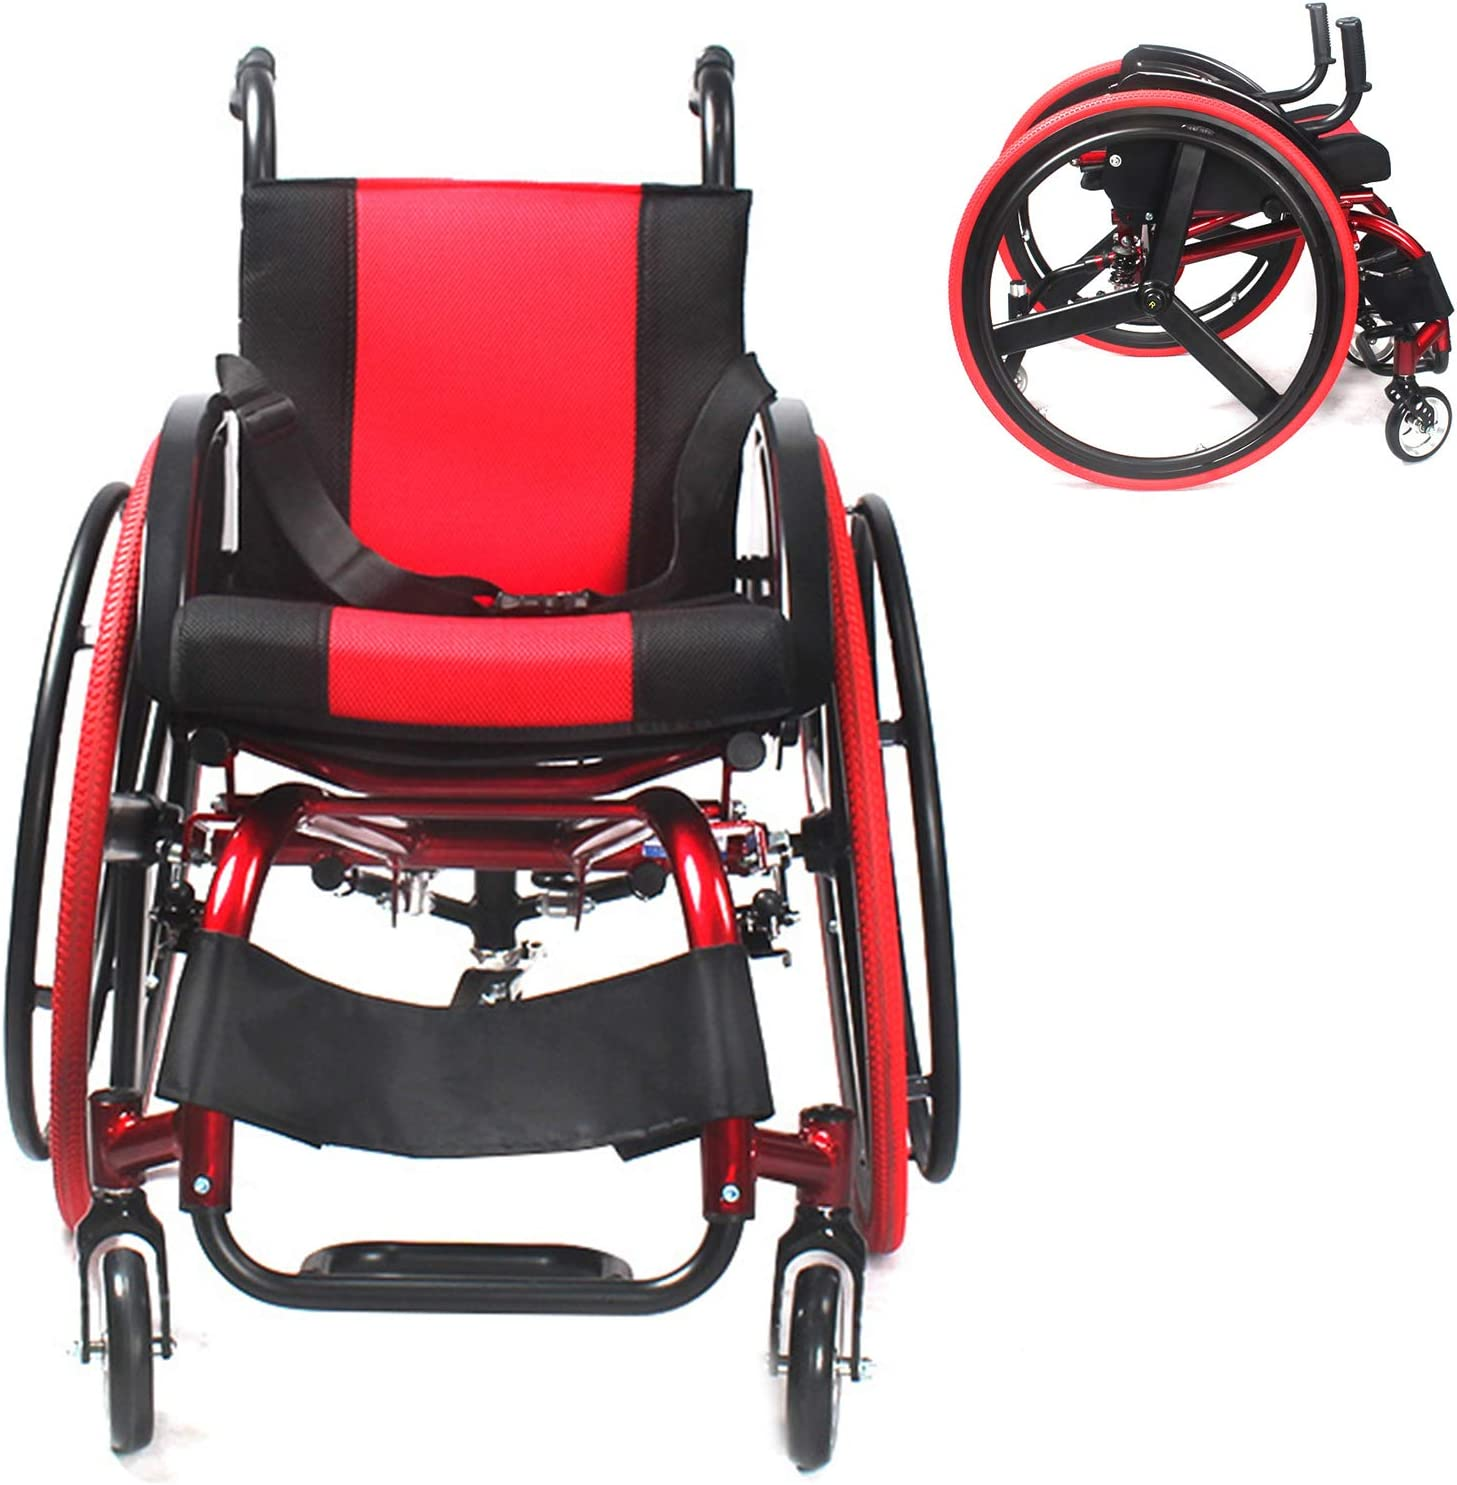 FC-LY Children's Wheelchair Lightweight Wheelchai Folding security Manual Super beauty product restock quality top